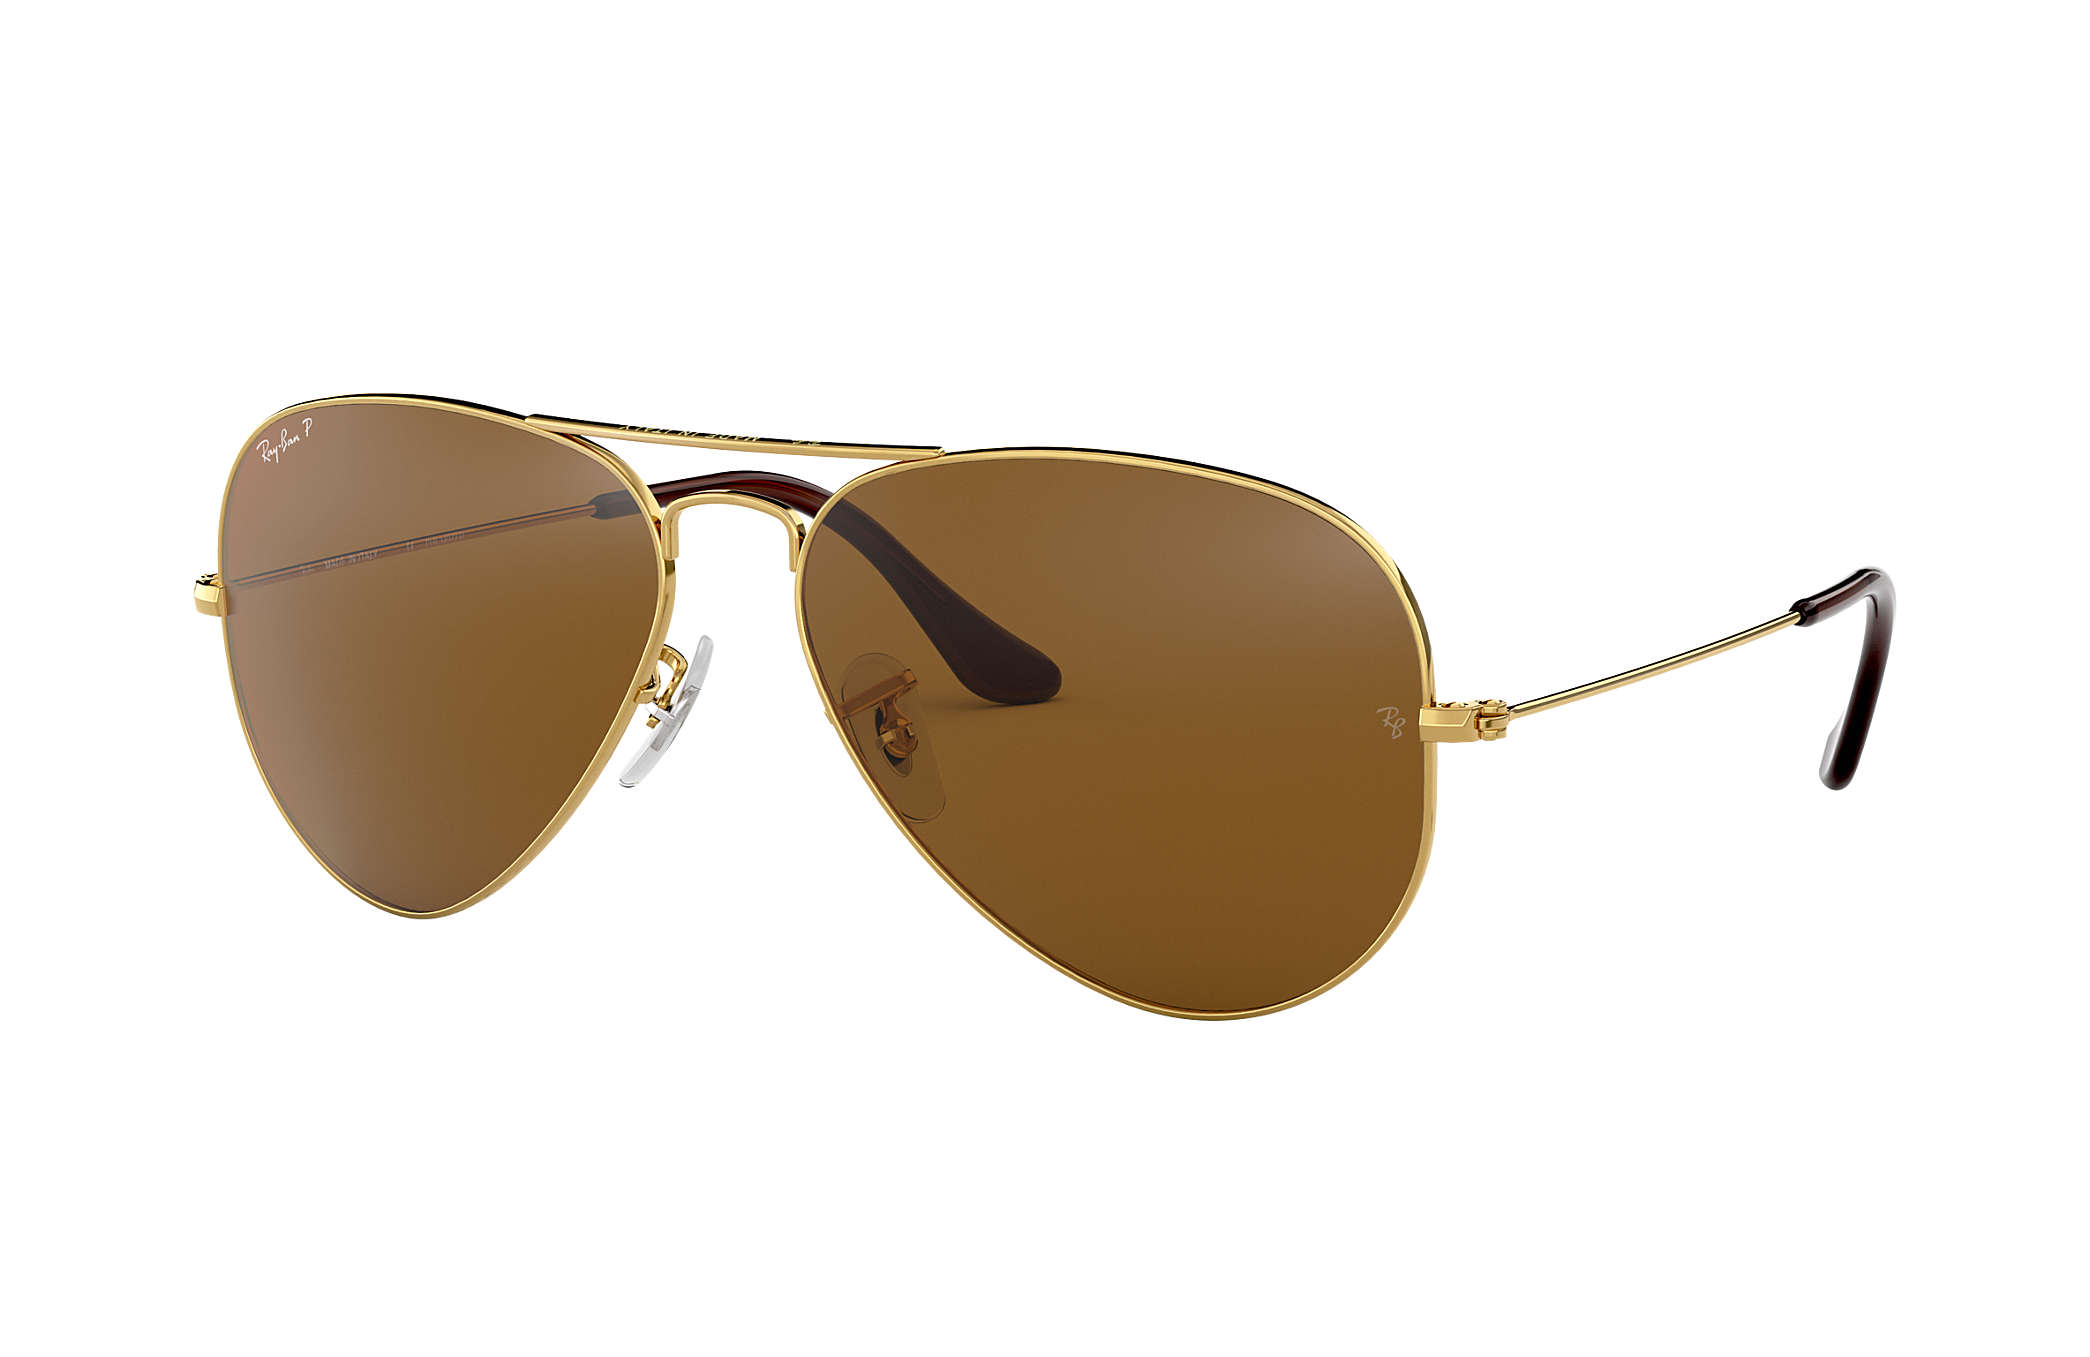 Ray-Ban Aviator Classic RB3025 Gold - Metal - Brown Polarized Lenses ... 0b27442aba